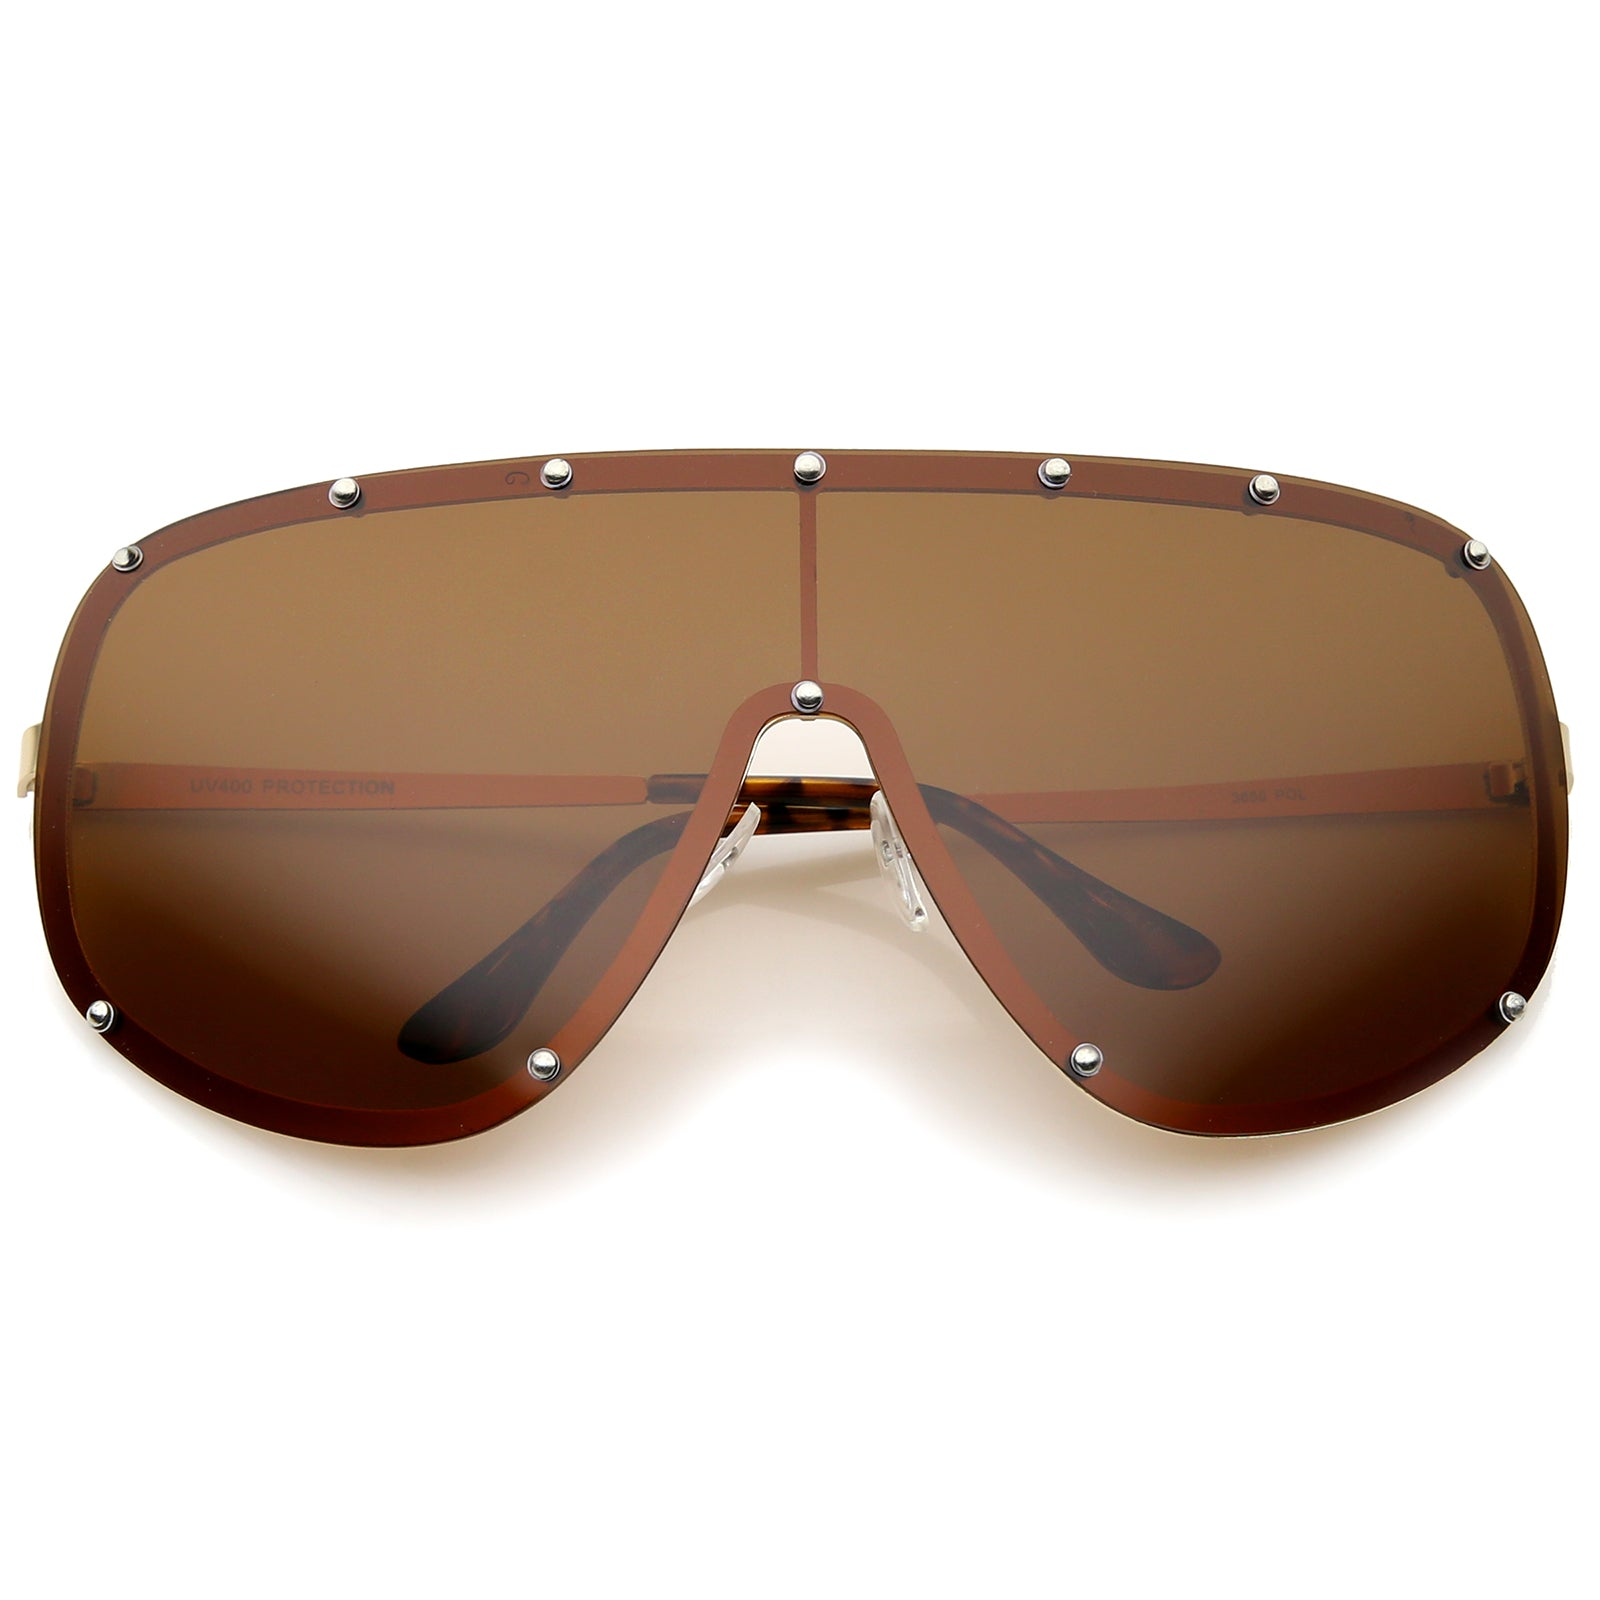 Oversize Flat Top Riveted Rimless Polarized Mono Lens Shield Sunglasses 80mm - sunglass.la - 1